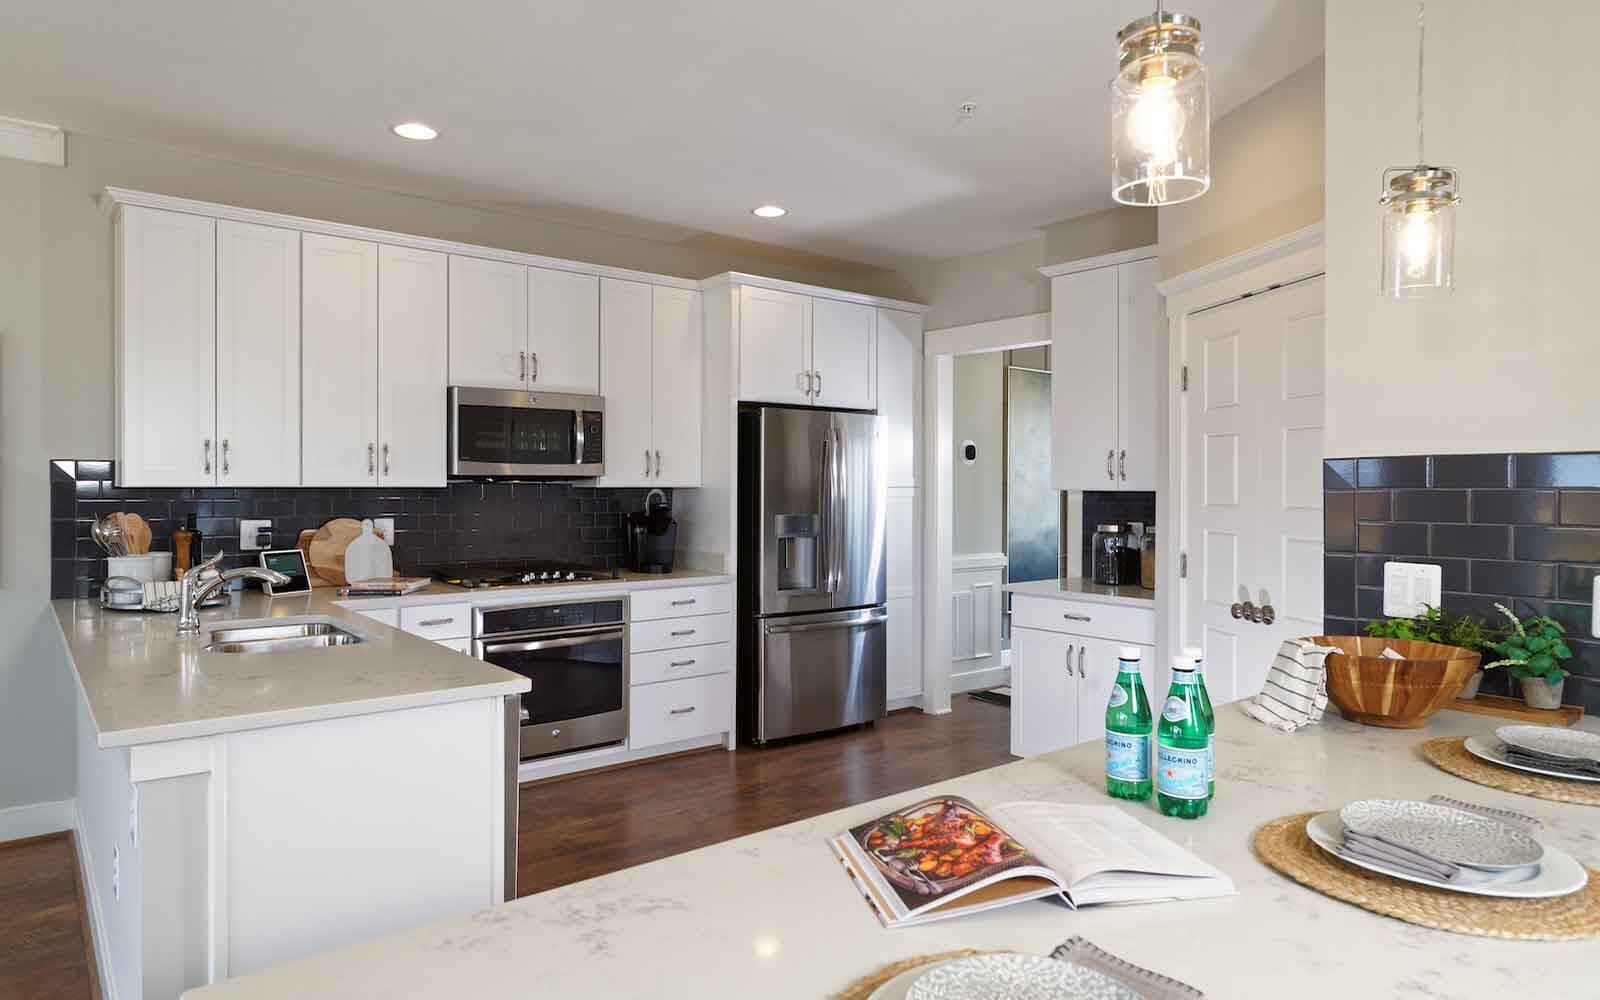 Aurora-kitchen-townhomes-silver-spring-md-bradfords-landing-brookfield-residential